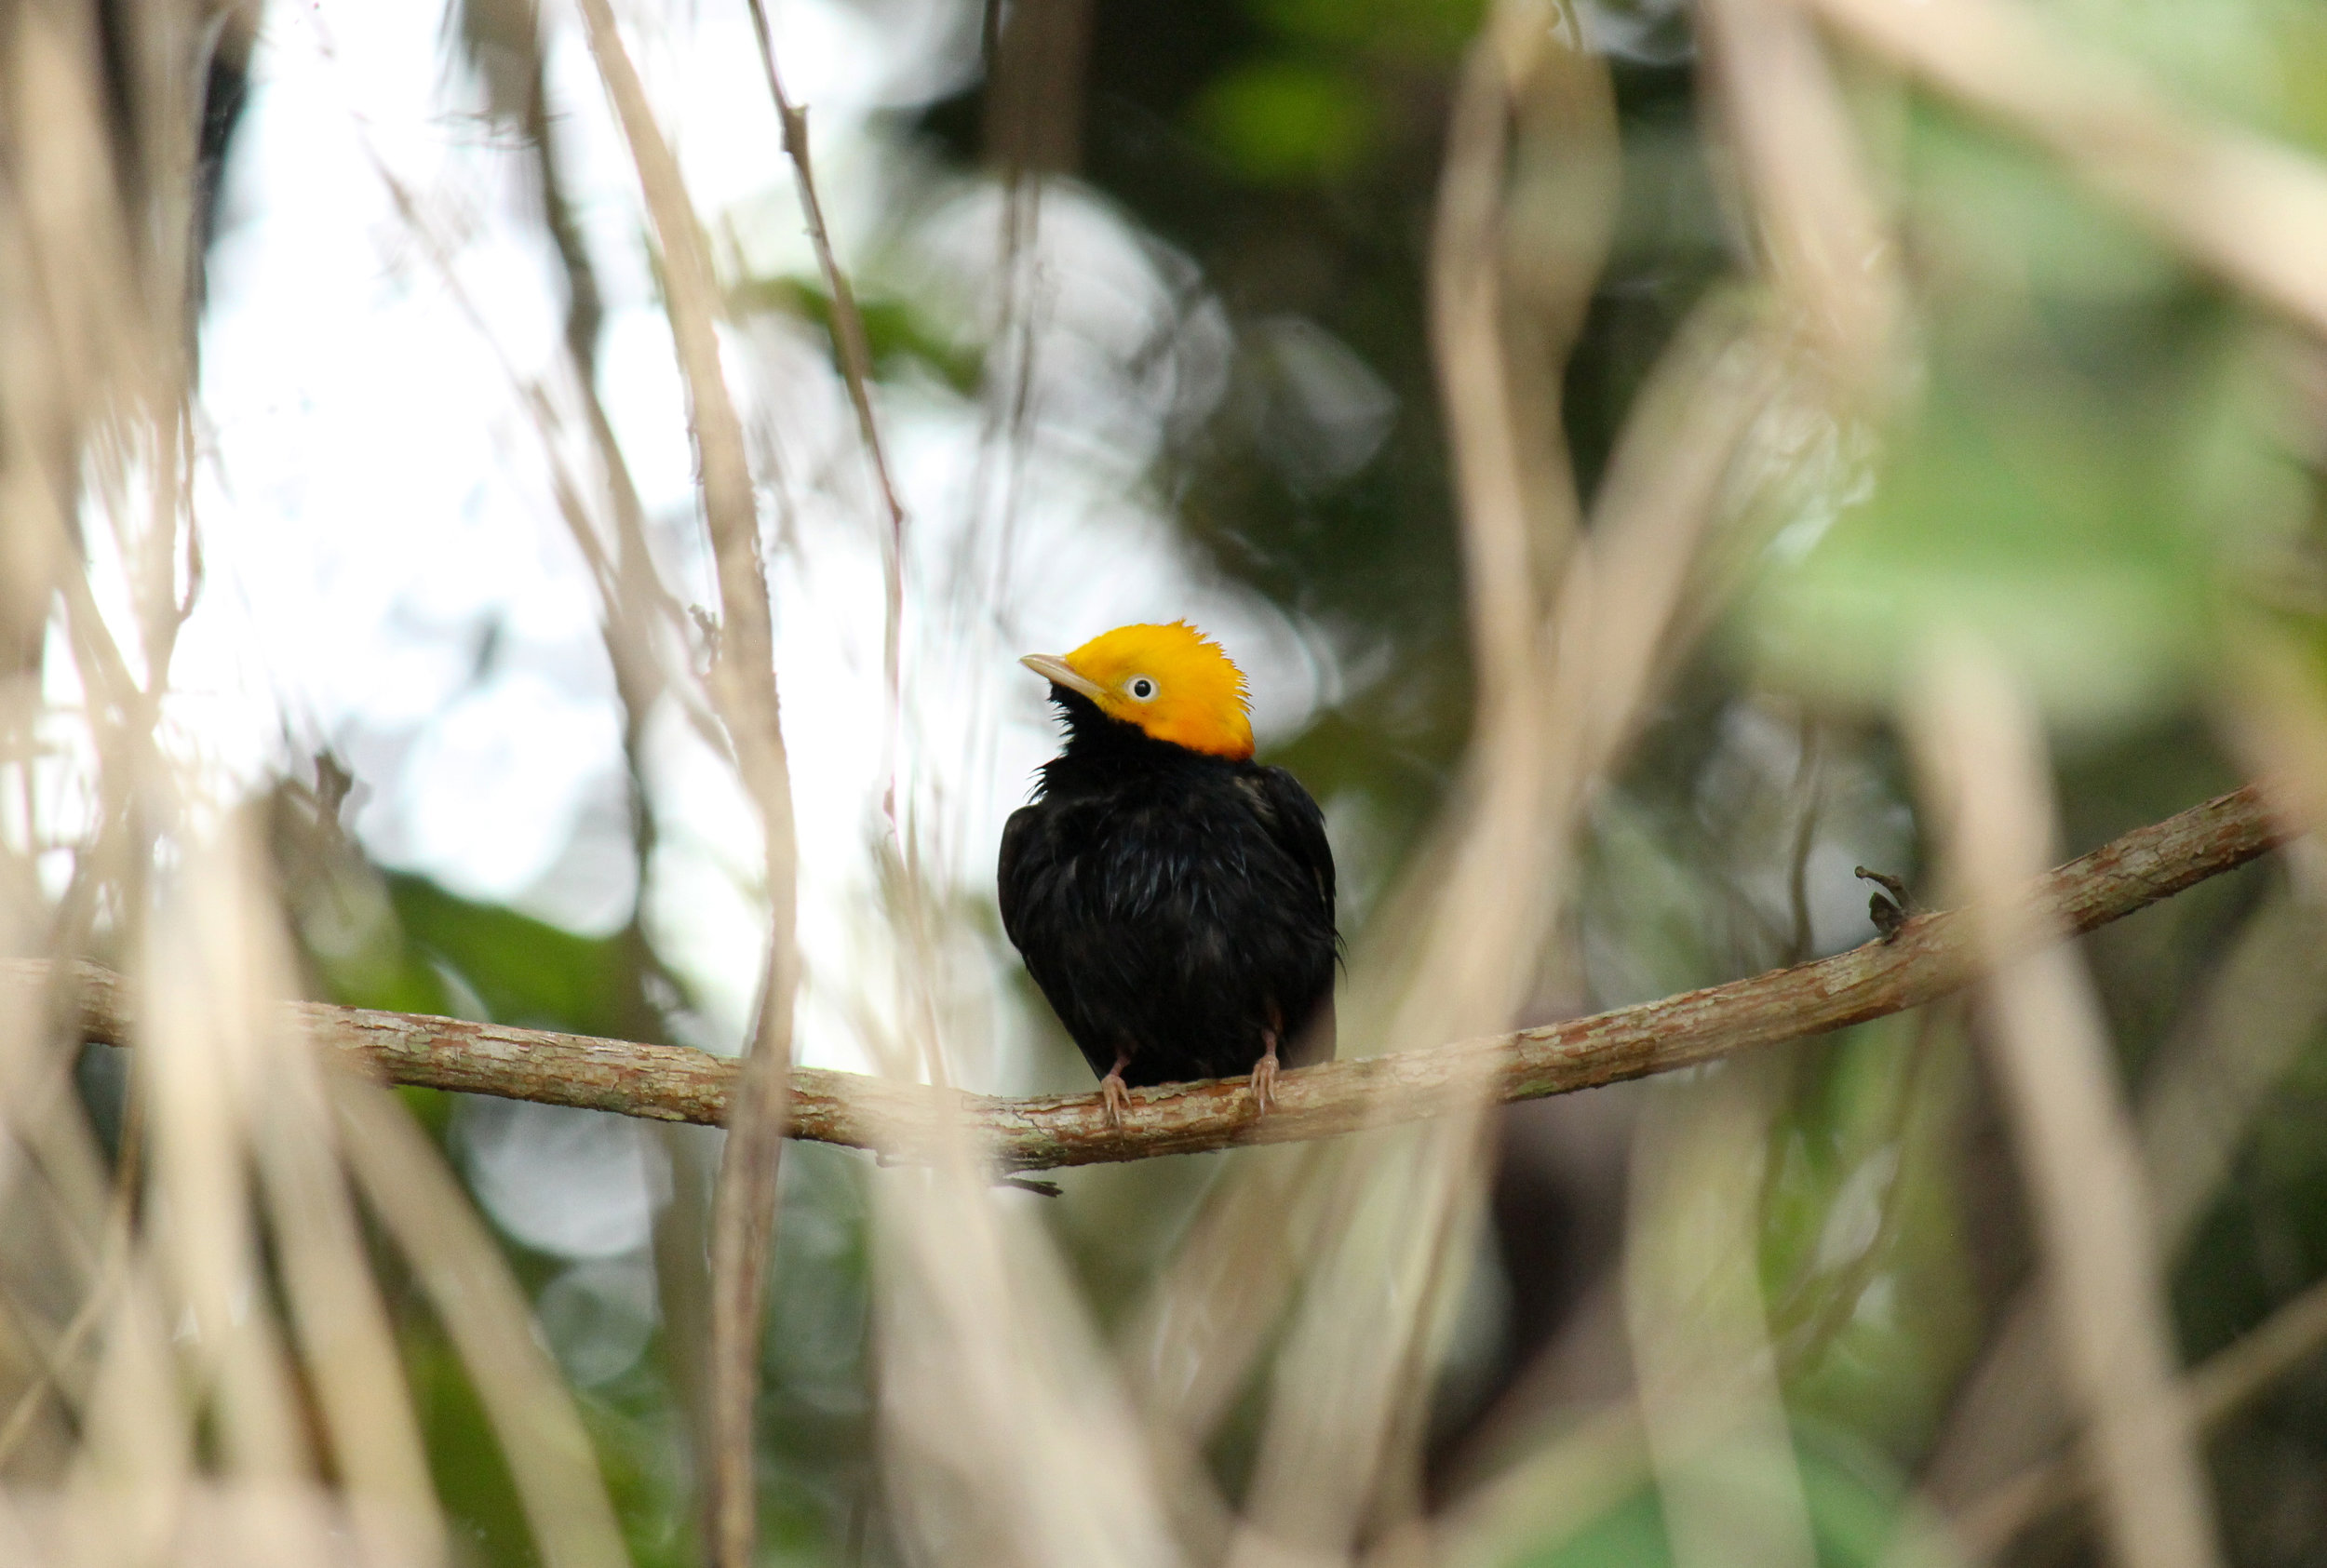 Golden-headed-Manakin-Ceratopipra-erythrocephala-Ciudad Perdida-The-Lost-City-Trek-Sierra-Nevada-de-Santa-Marta-Copyright-Colombian-Project-Photo-Bird-6.jpg